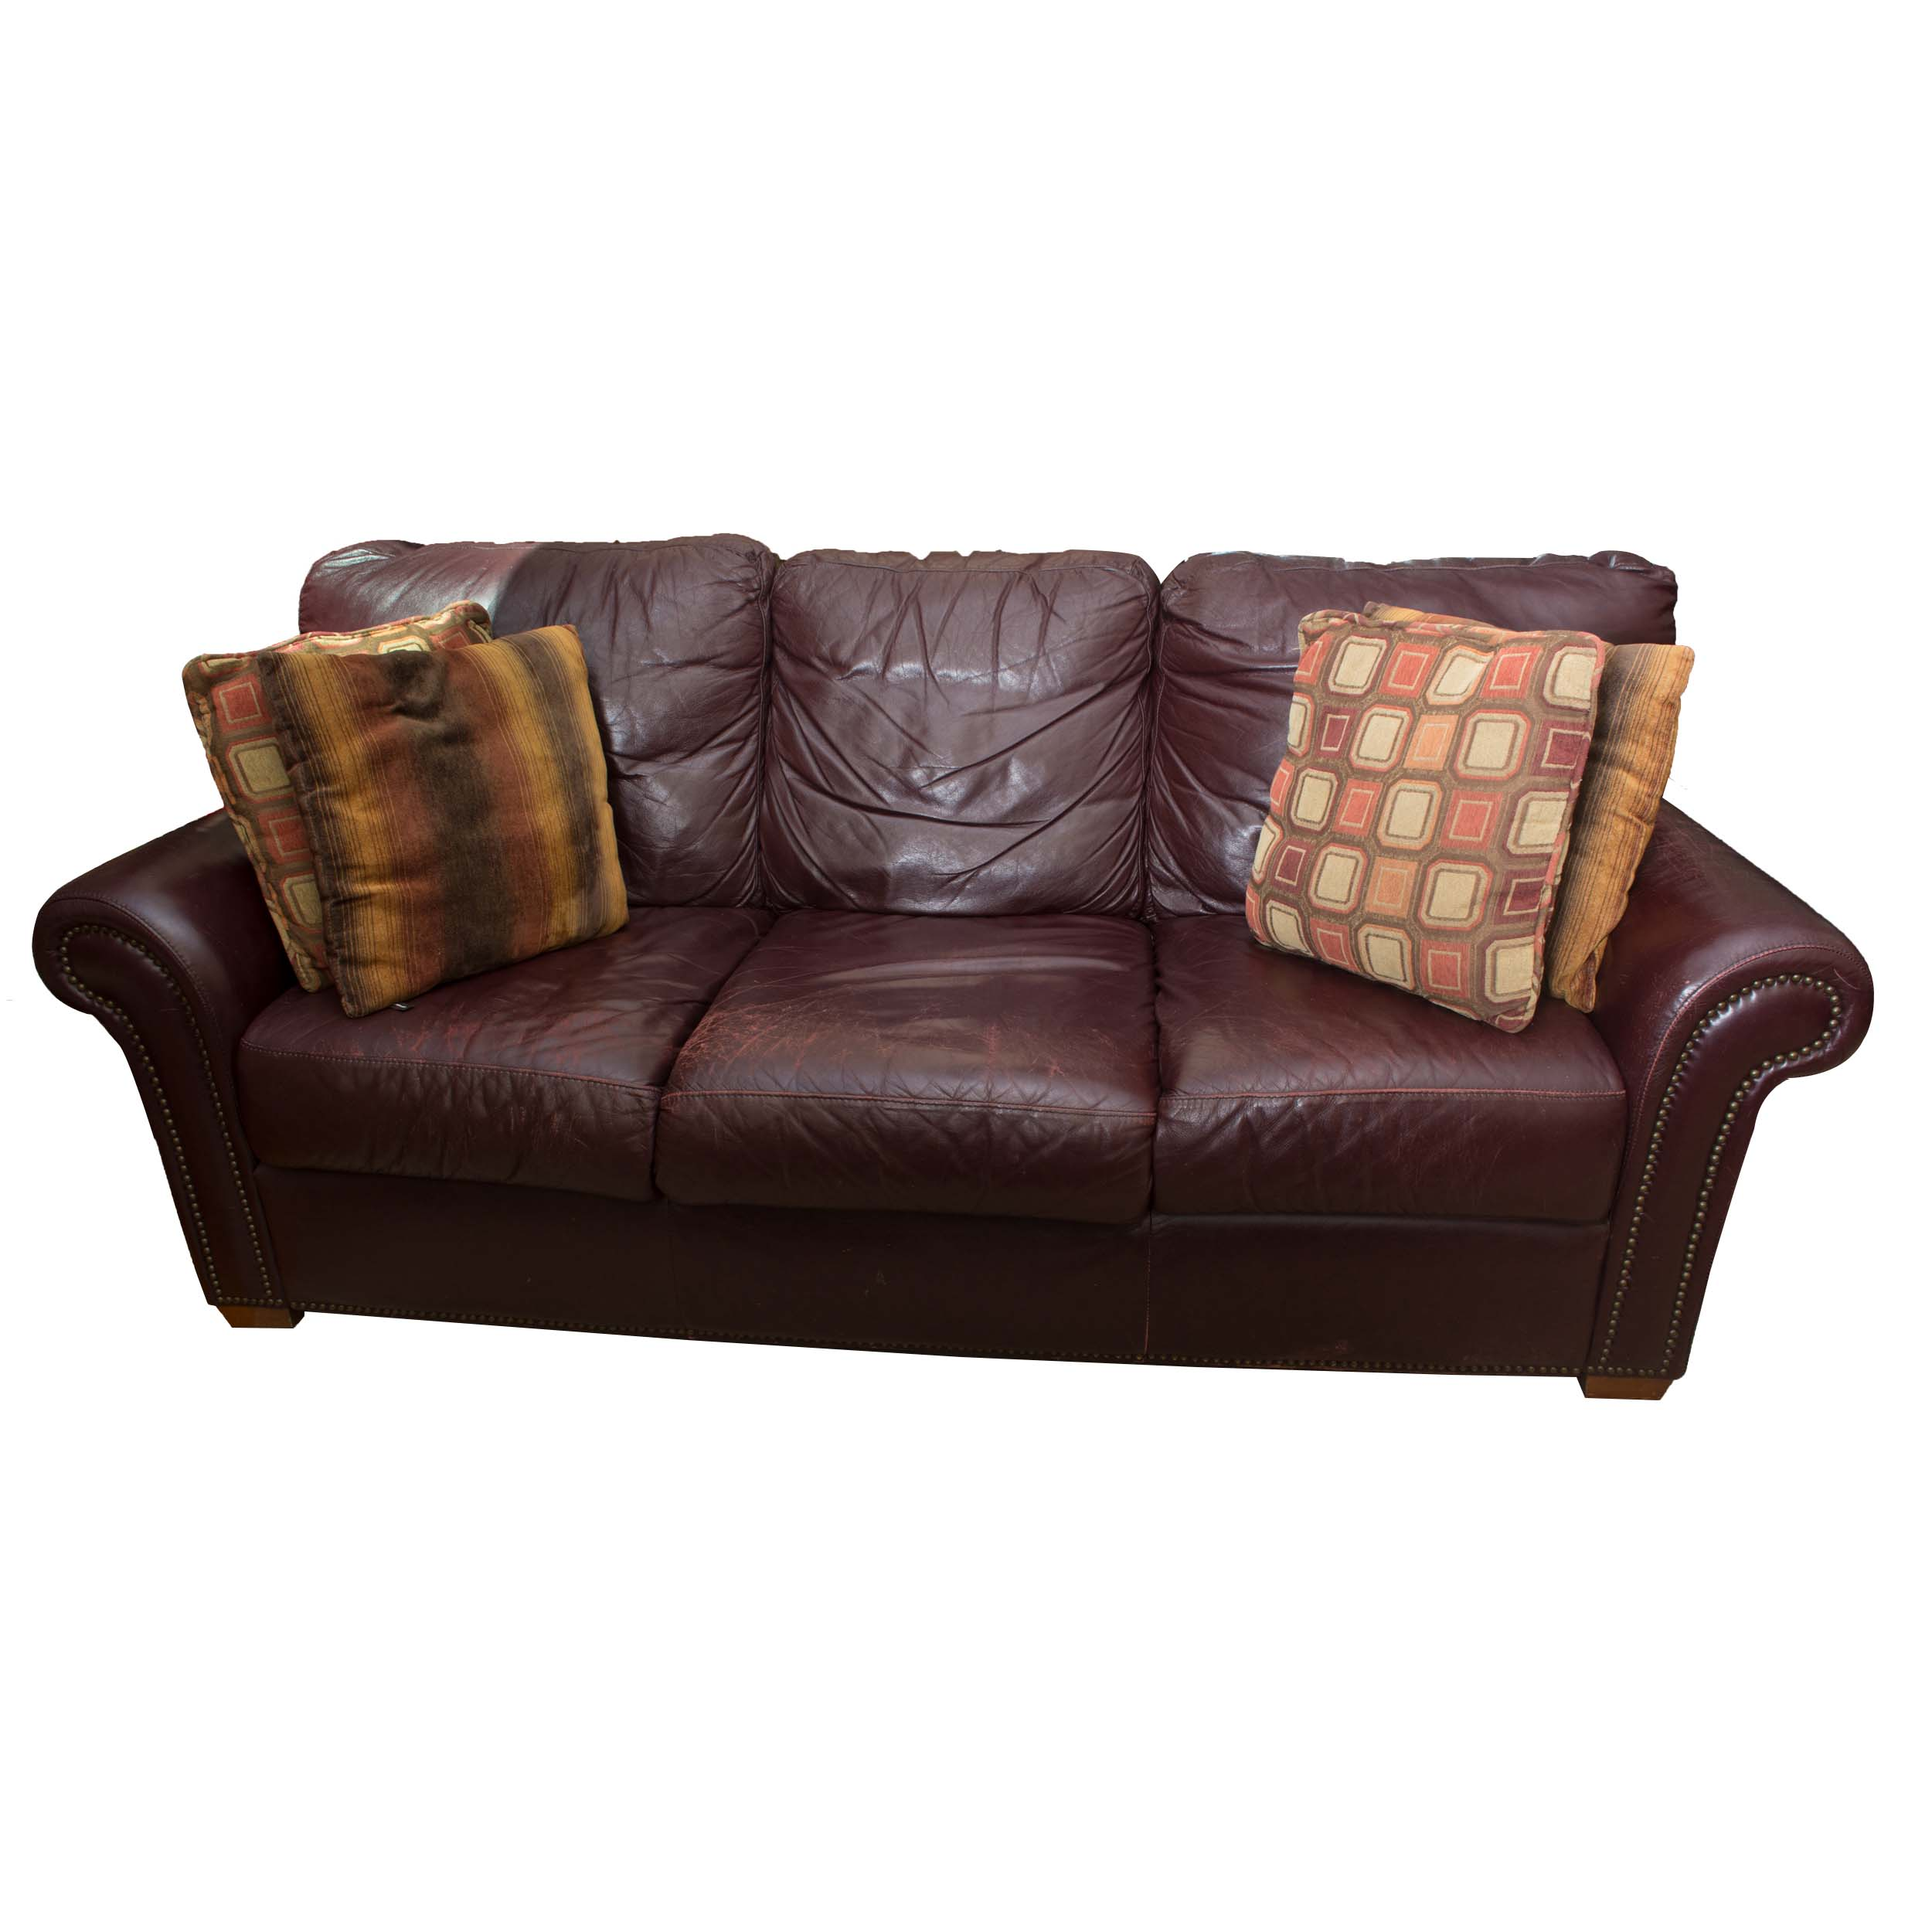 Burgundy Leather Sofa With Accent Pillows